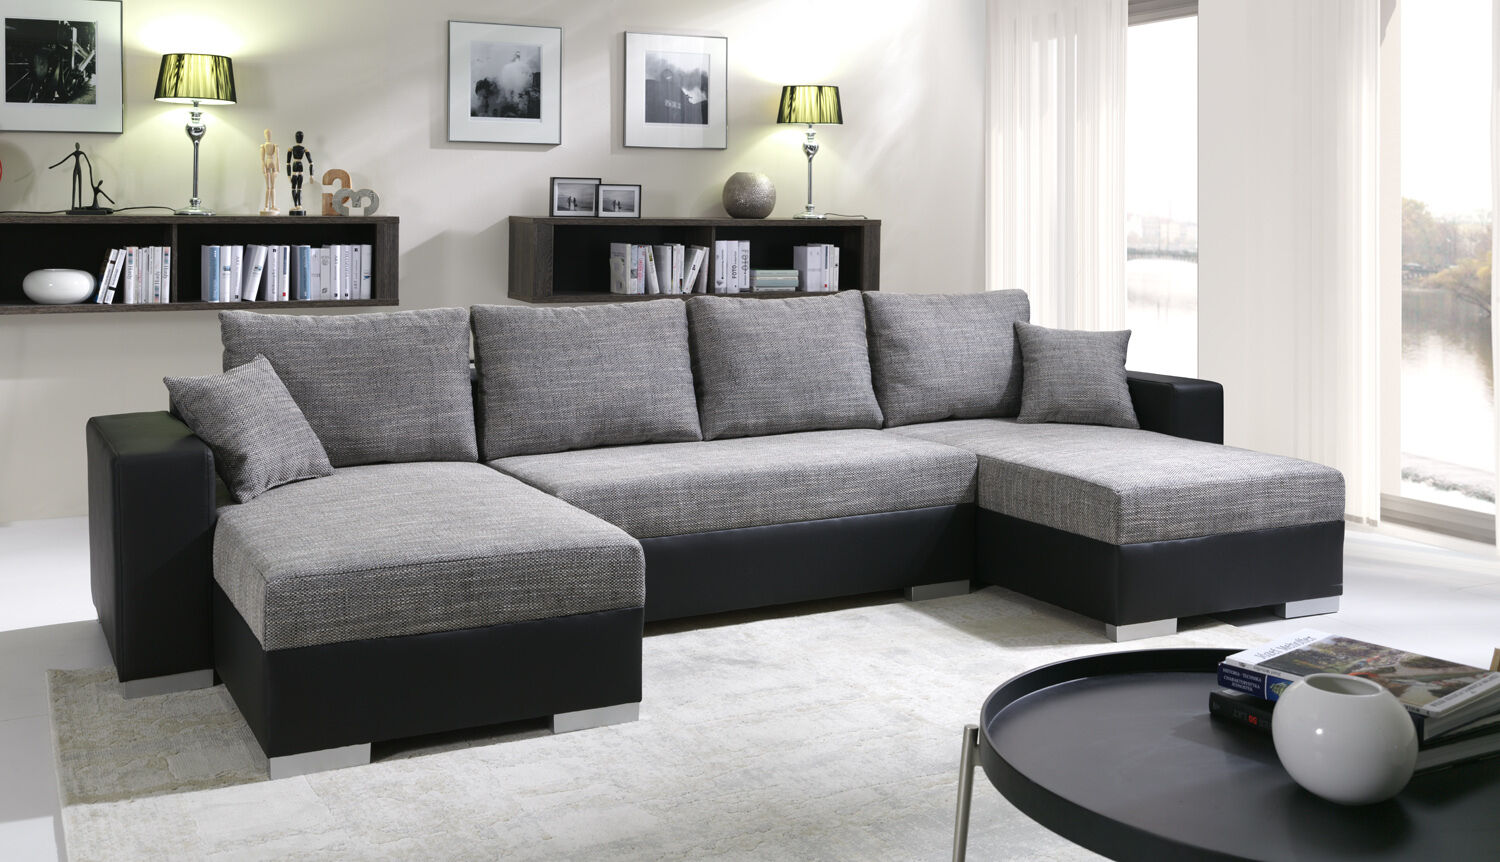 sofa couchgarnitur couch sofagarnitur u 4112200 6. Black Bedroom Furniture Sets. Home Design Ideas